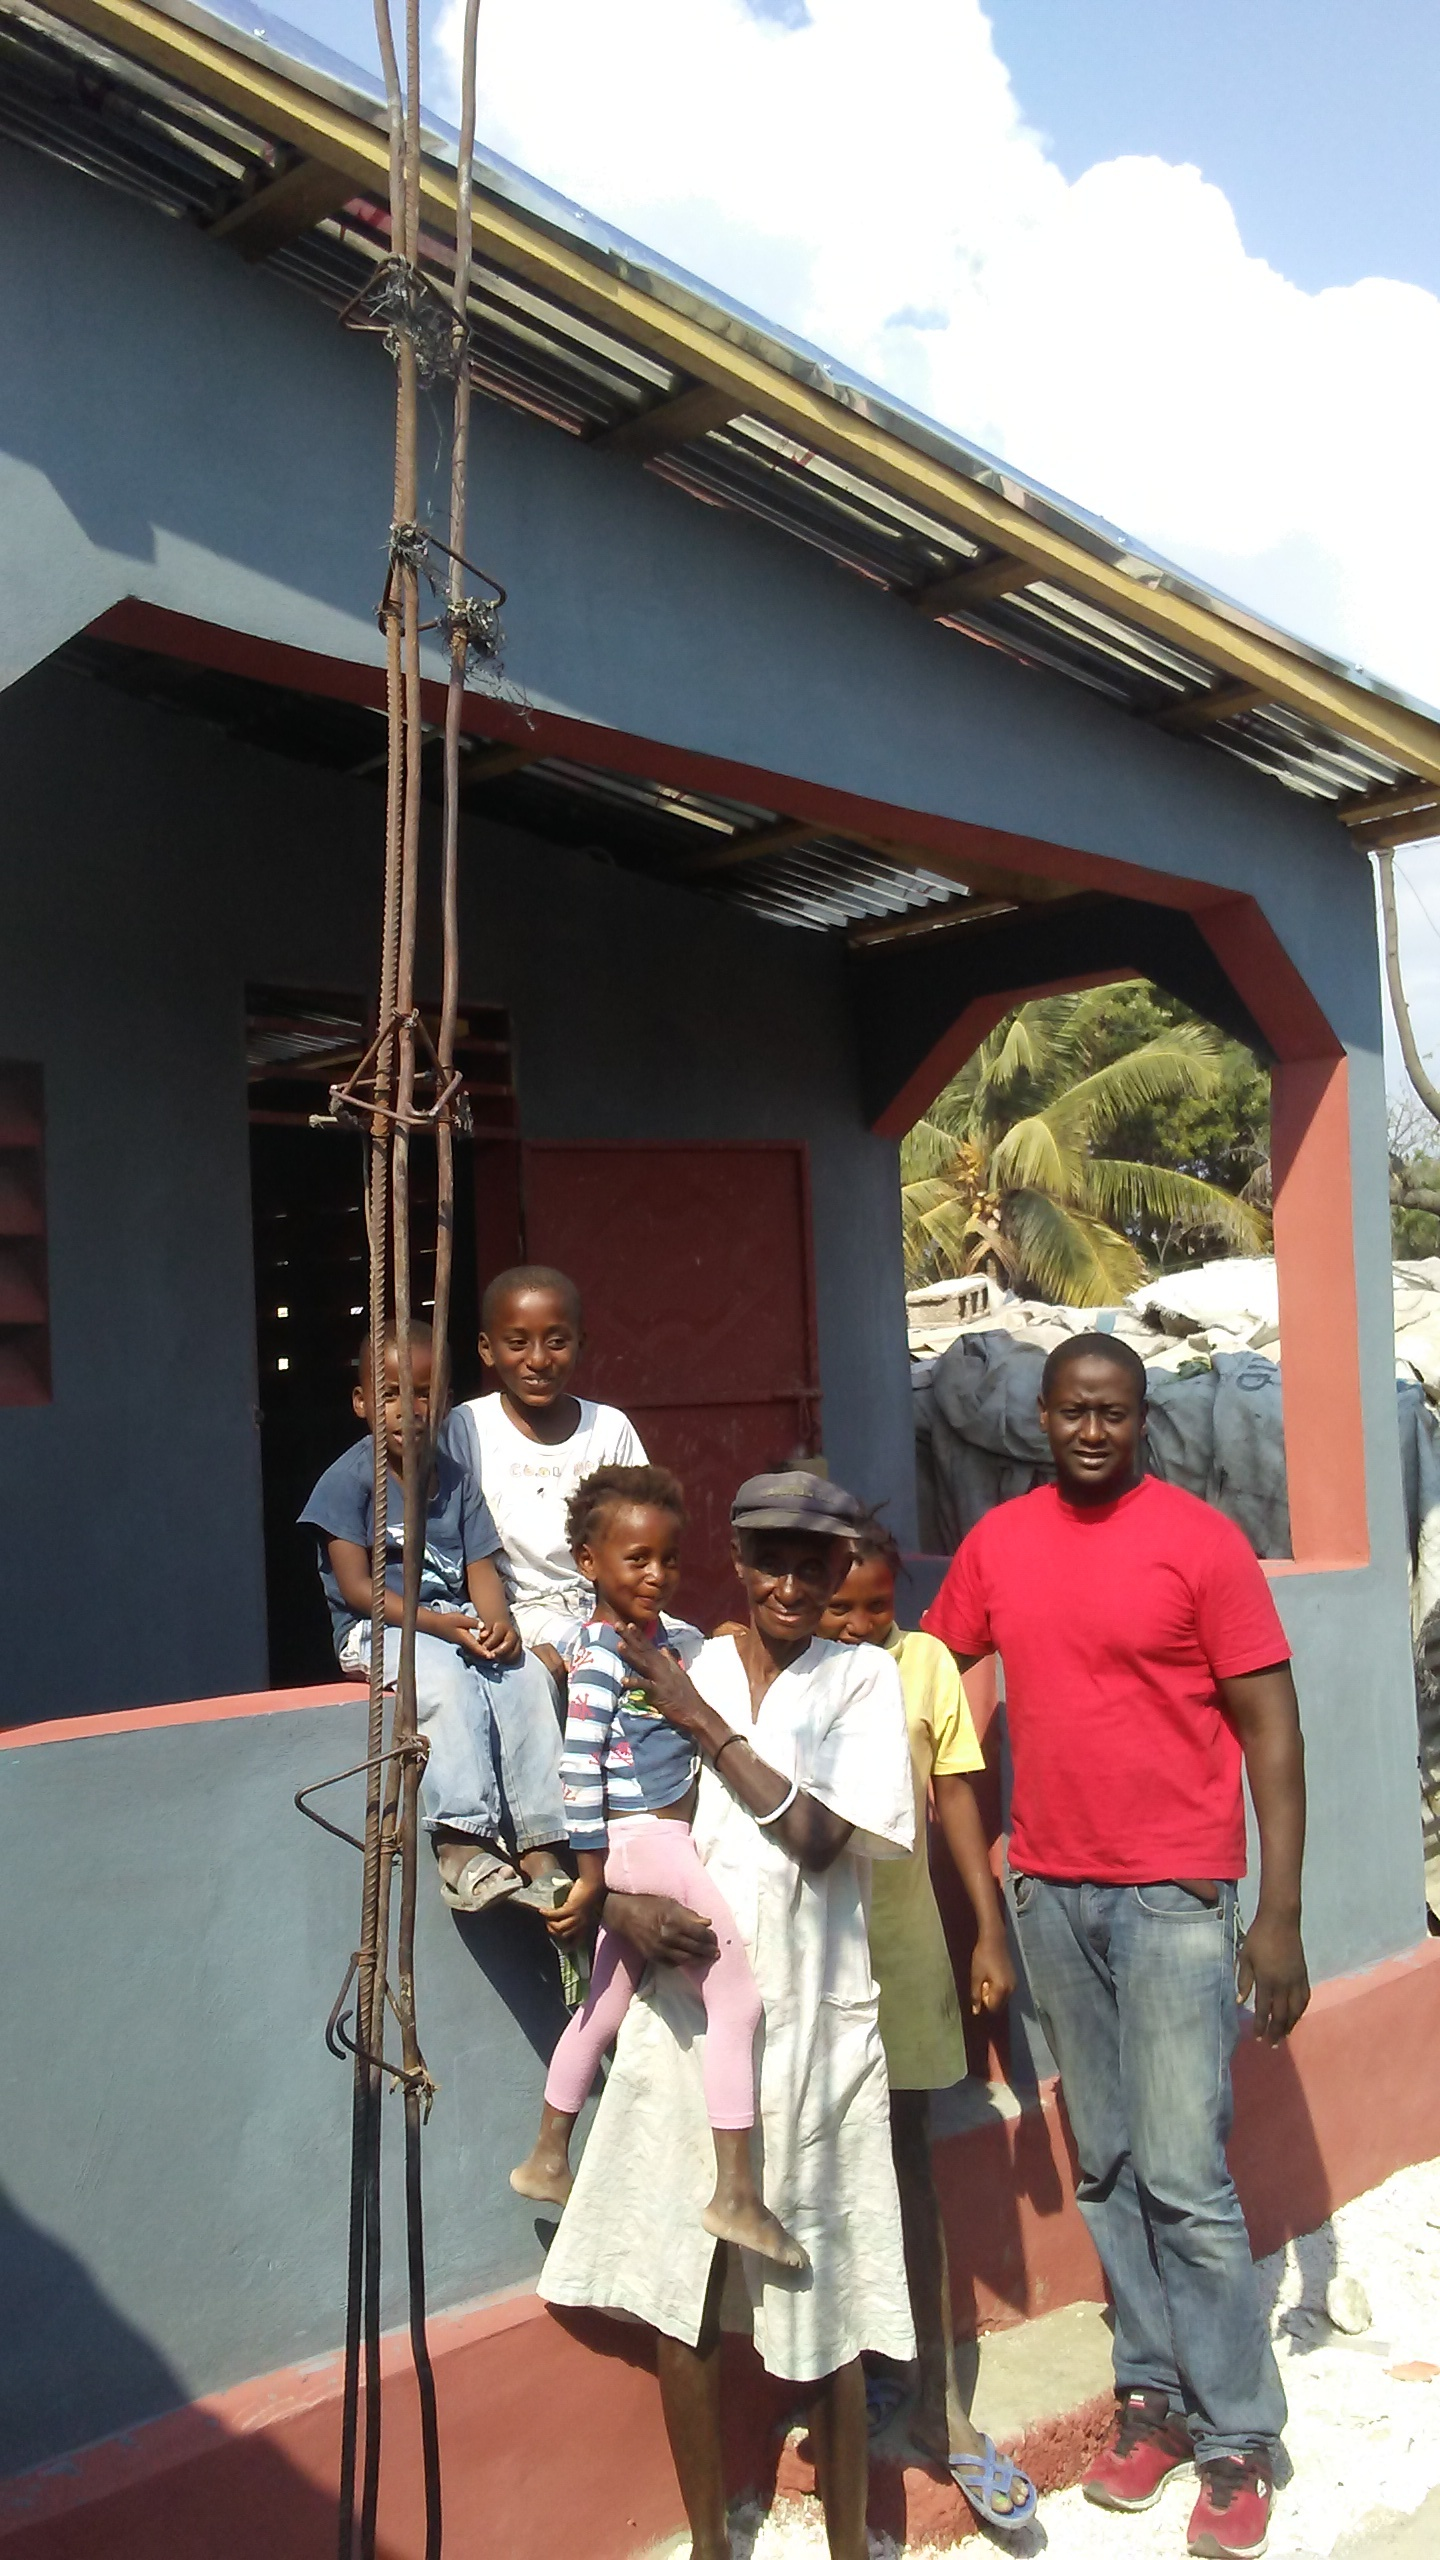 Lucienne Joseph with her grandchildren and Jimmy, Homes from the Heart's liaison in Haiti.